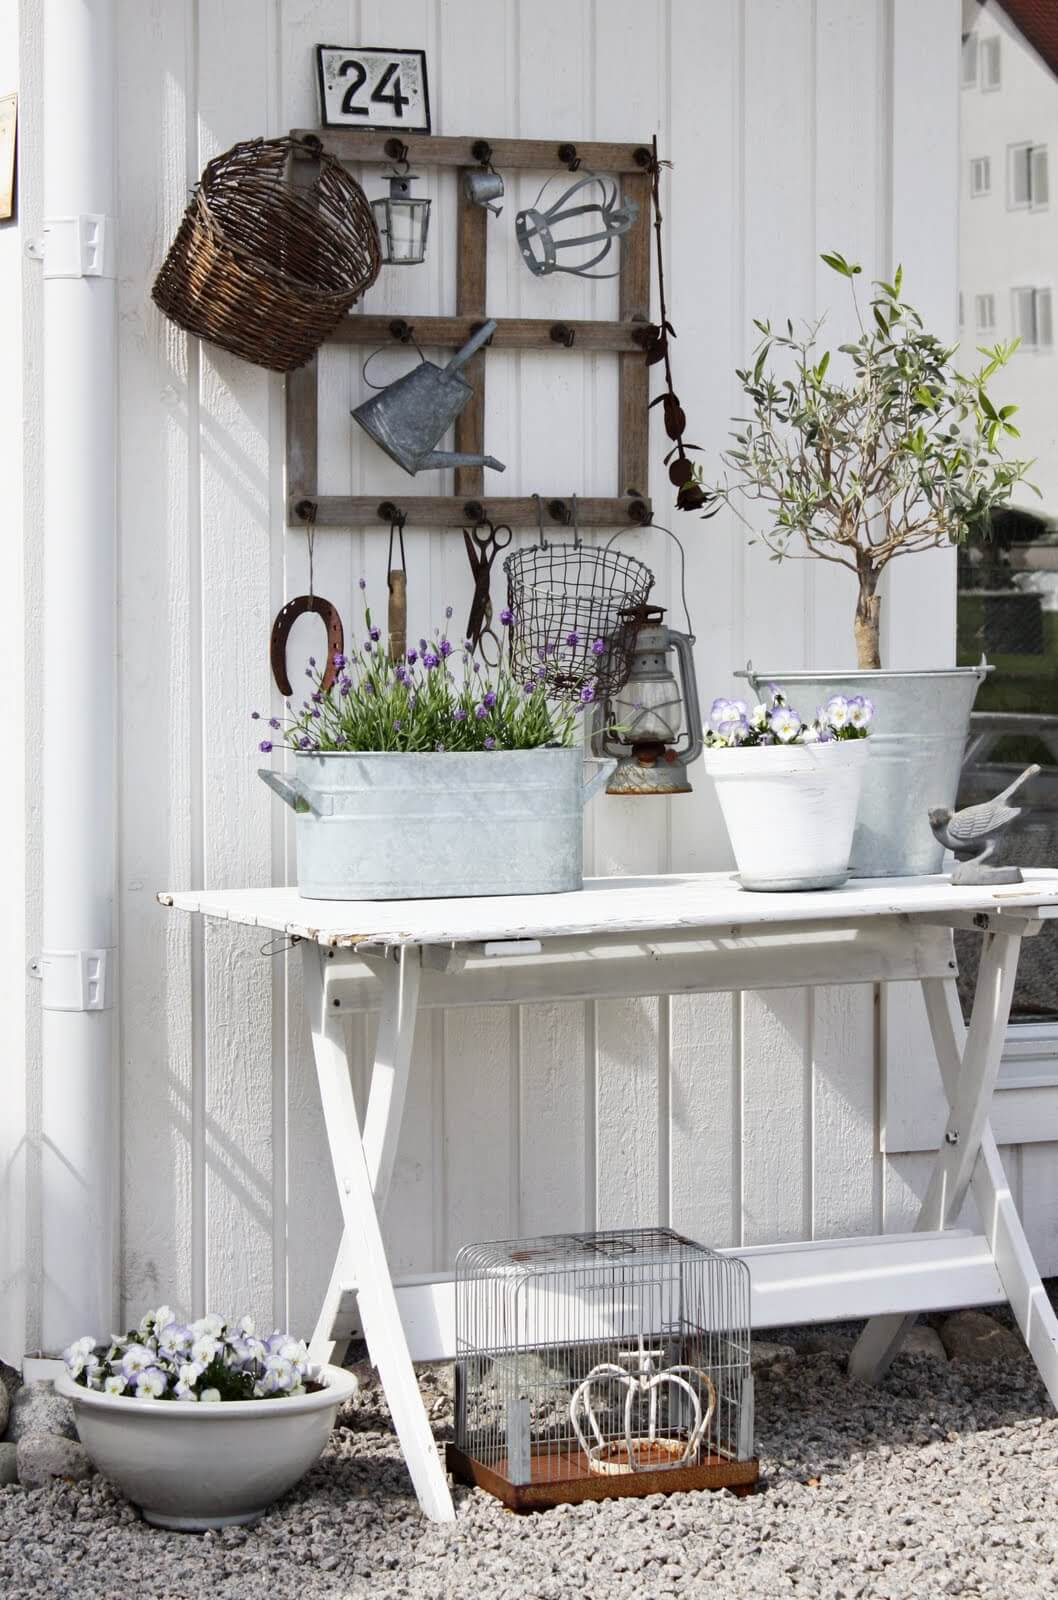 Garden Display Table with Vintage Metal Touches